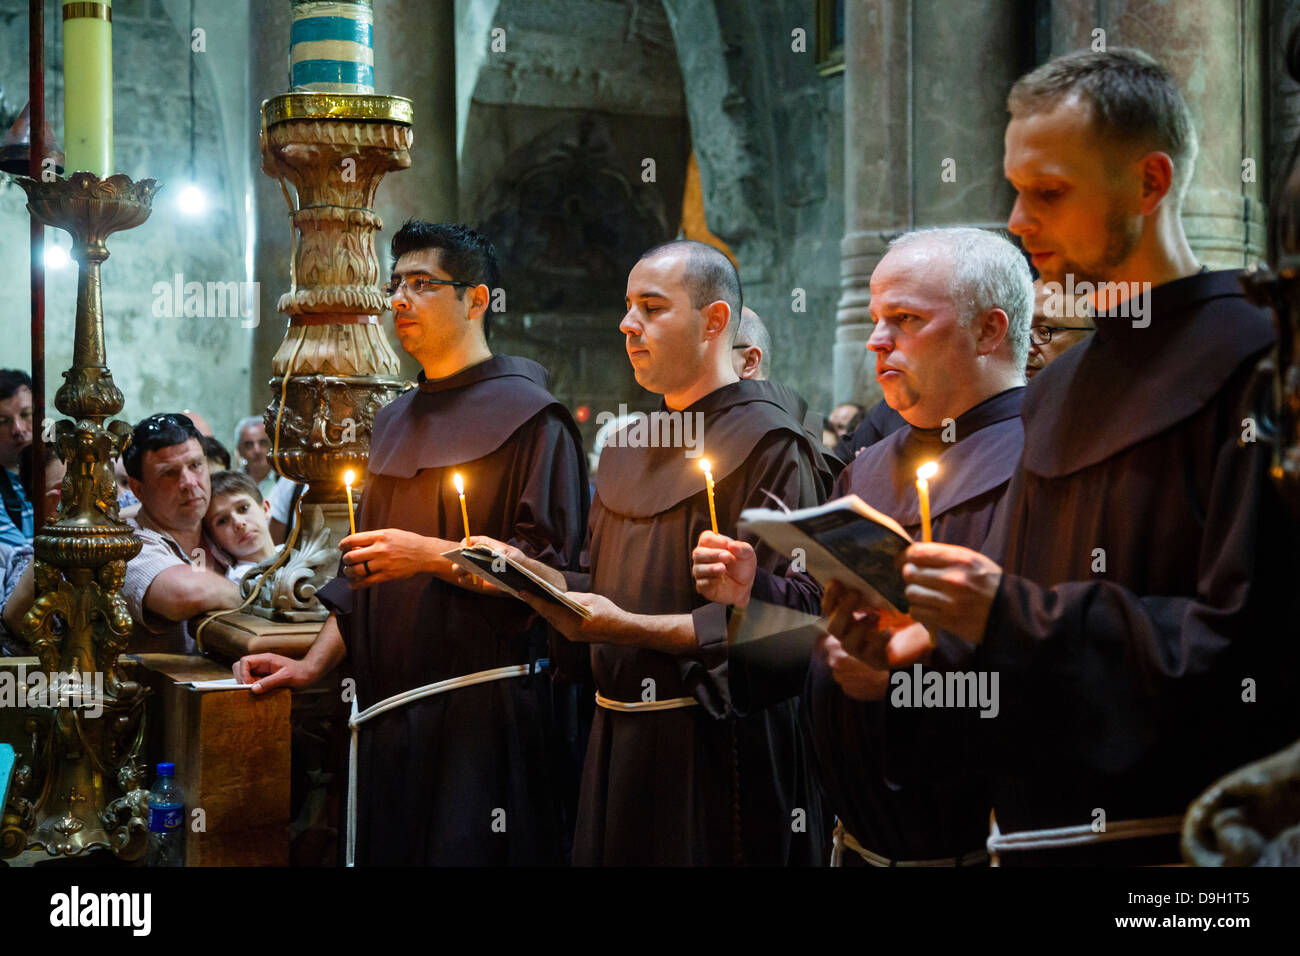 Franciscan monks at the church of the Holy Sepulchre in the old city, Jerusalem, Israel. - Stock Image